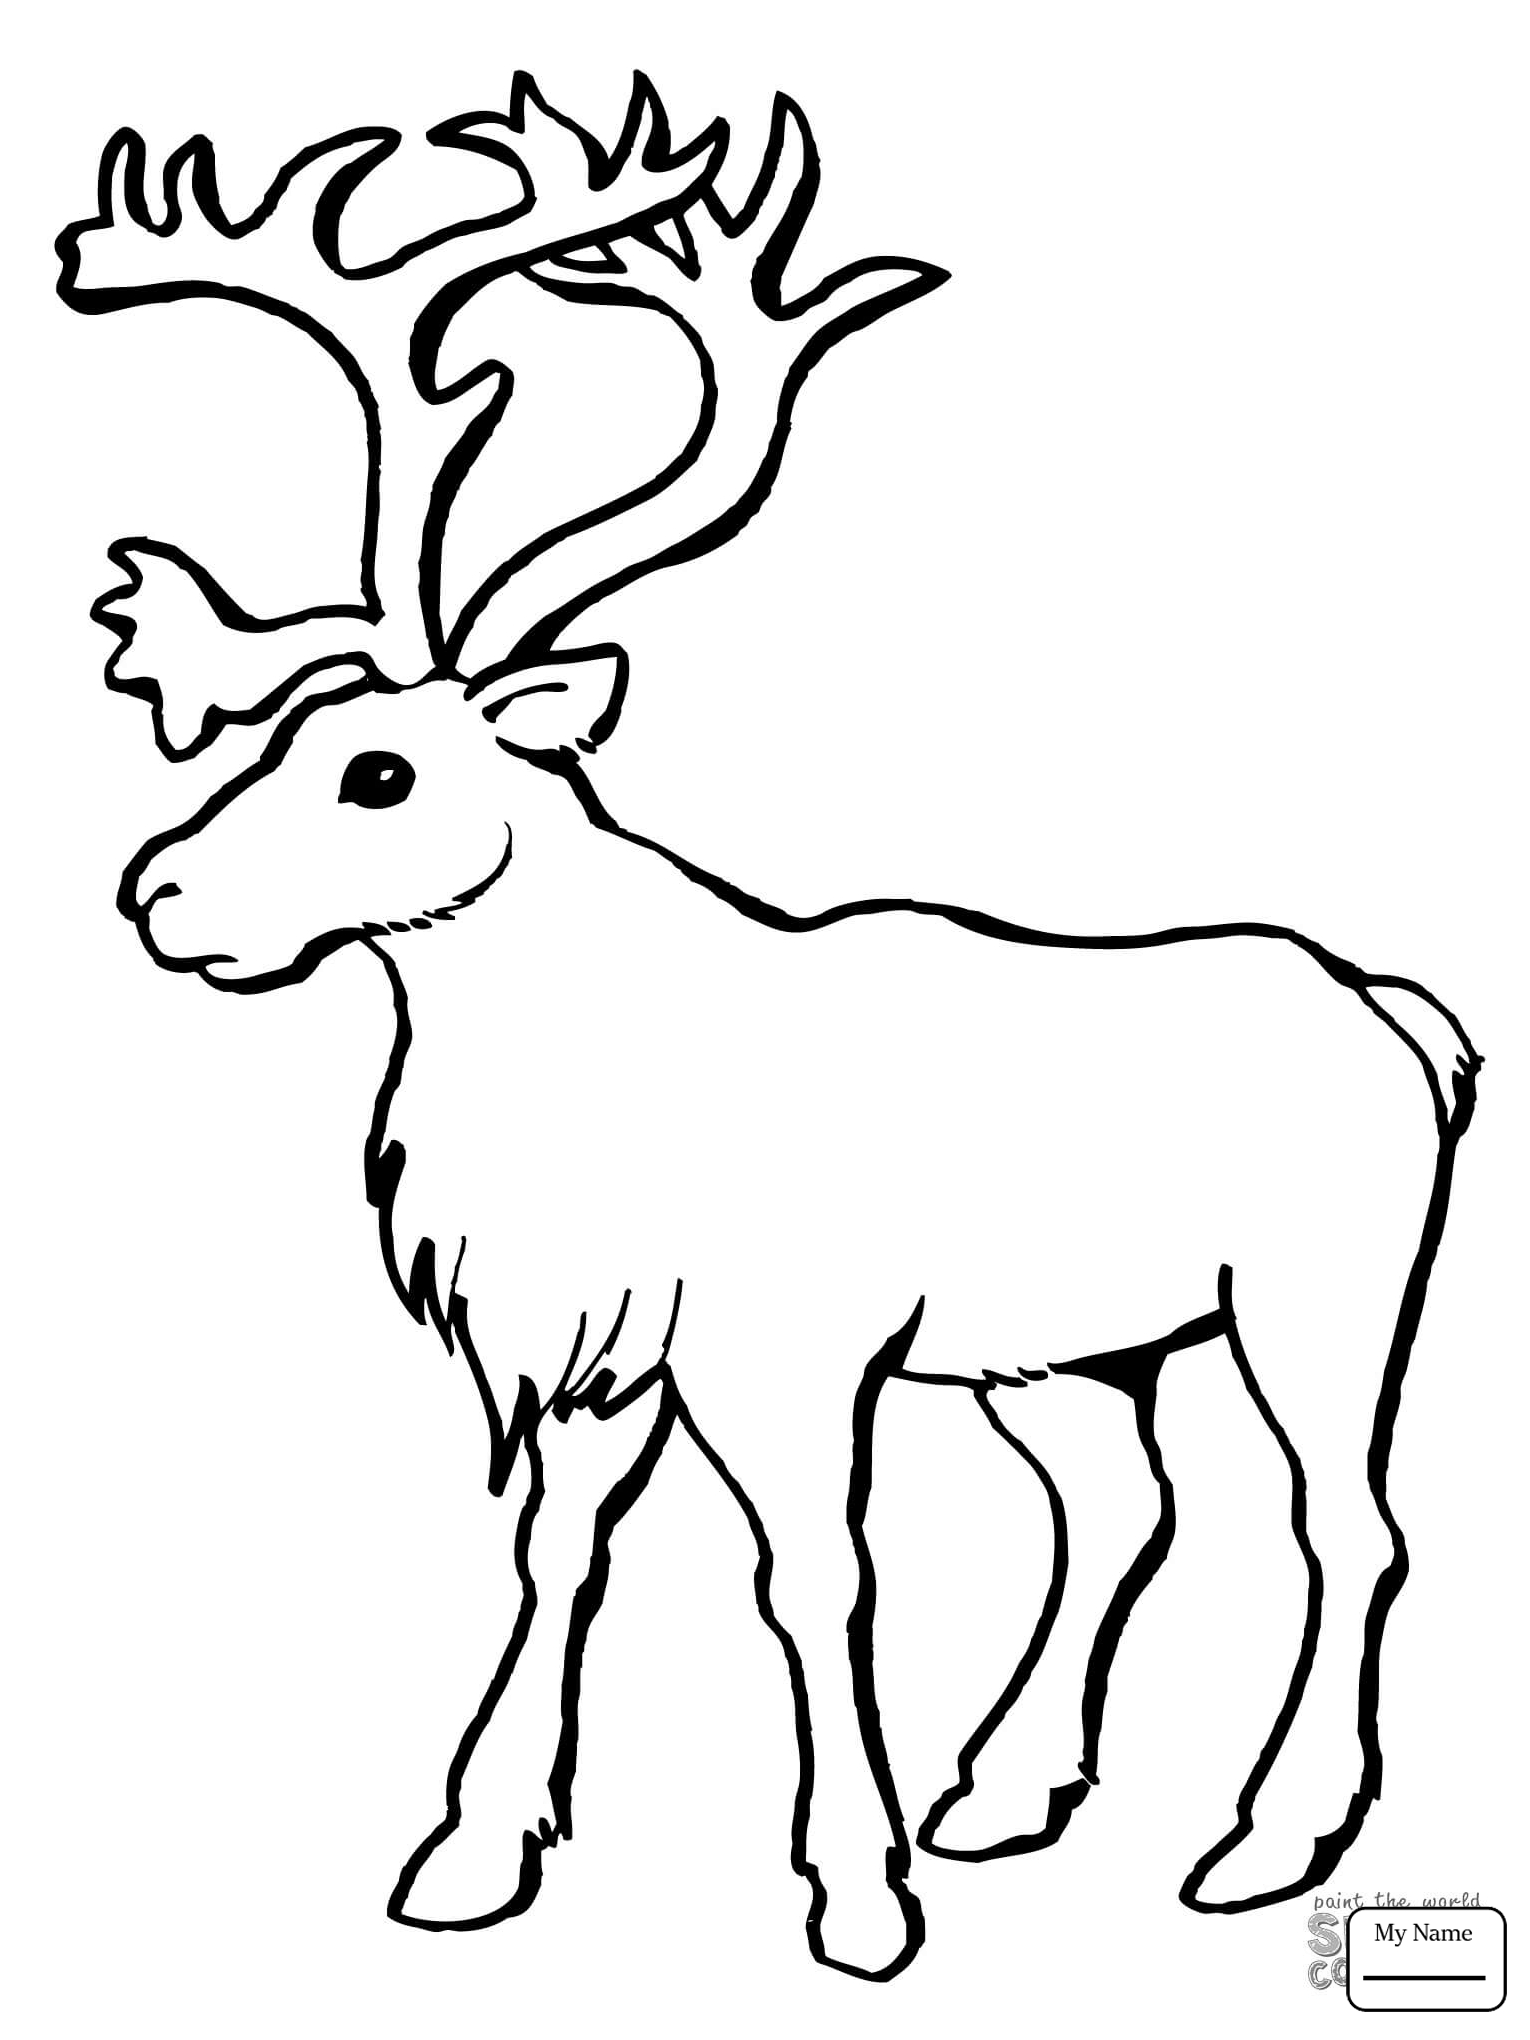 Deer Coloring Pages | Free download best Deer Coloring Pages on ...